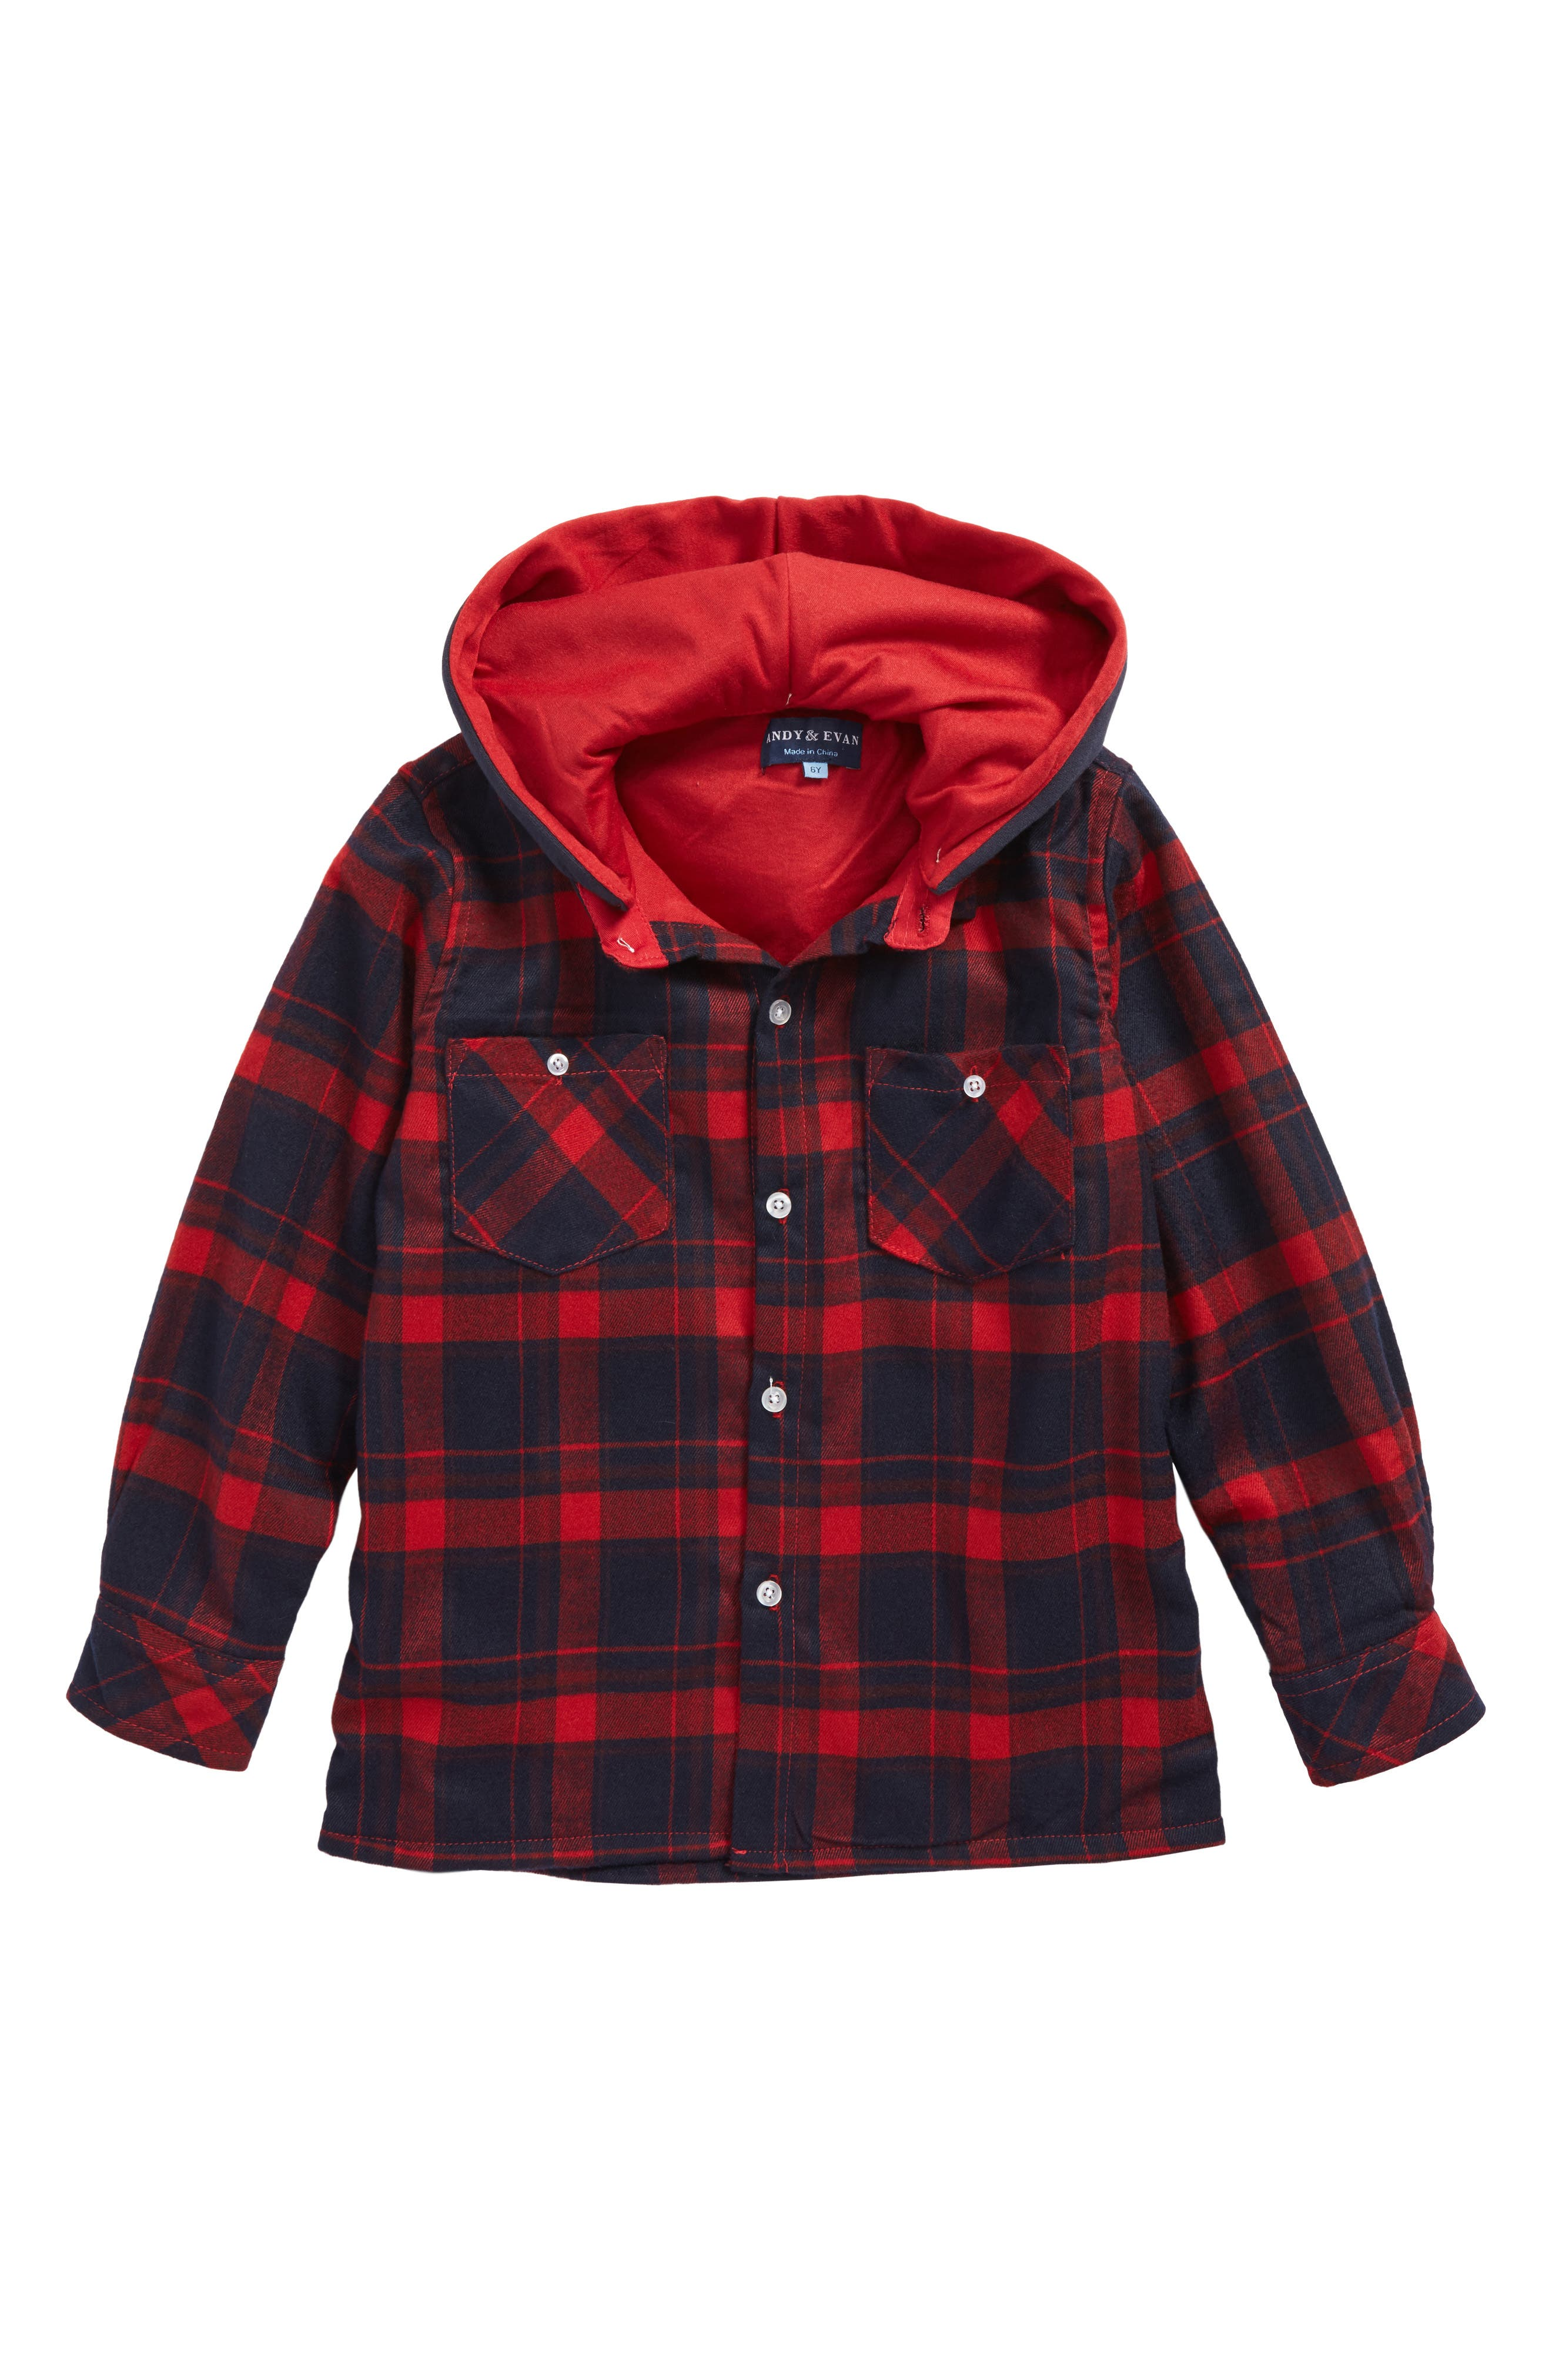 Andy & Even Hooded Flannel Shirt (Toddler Boys & Little Boys)